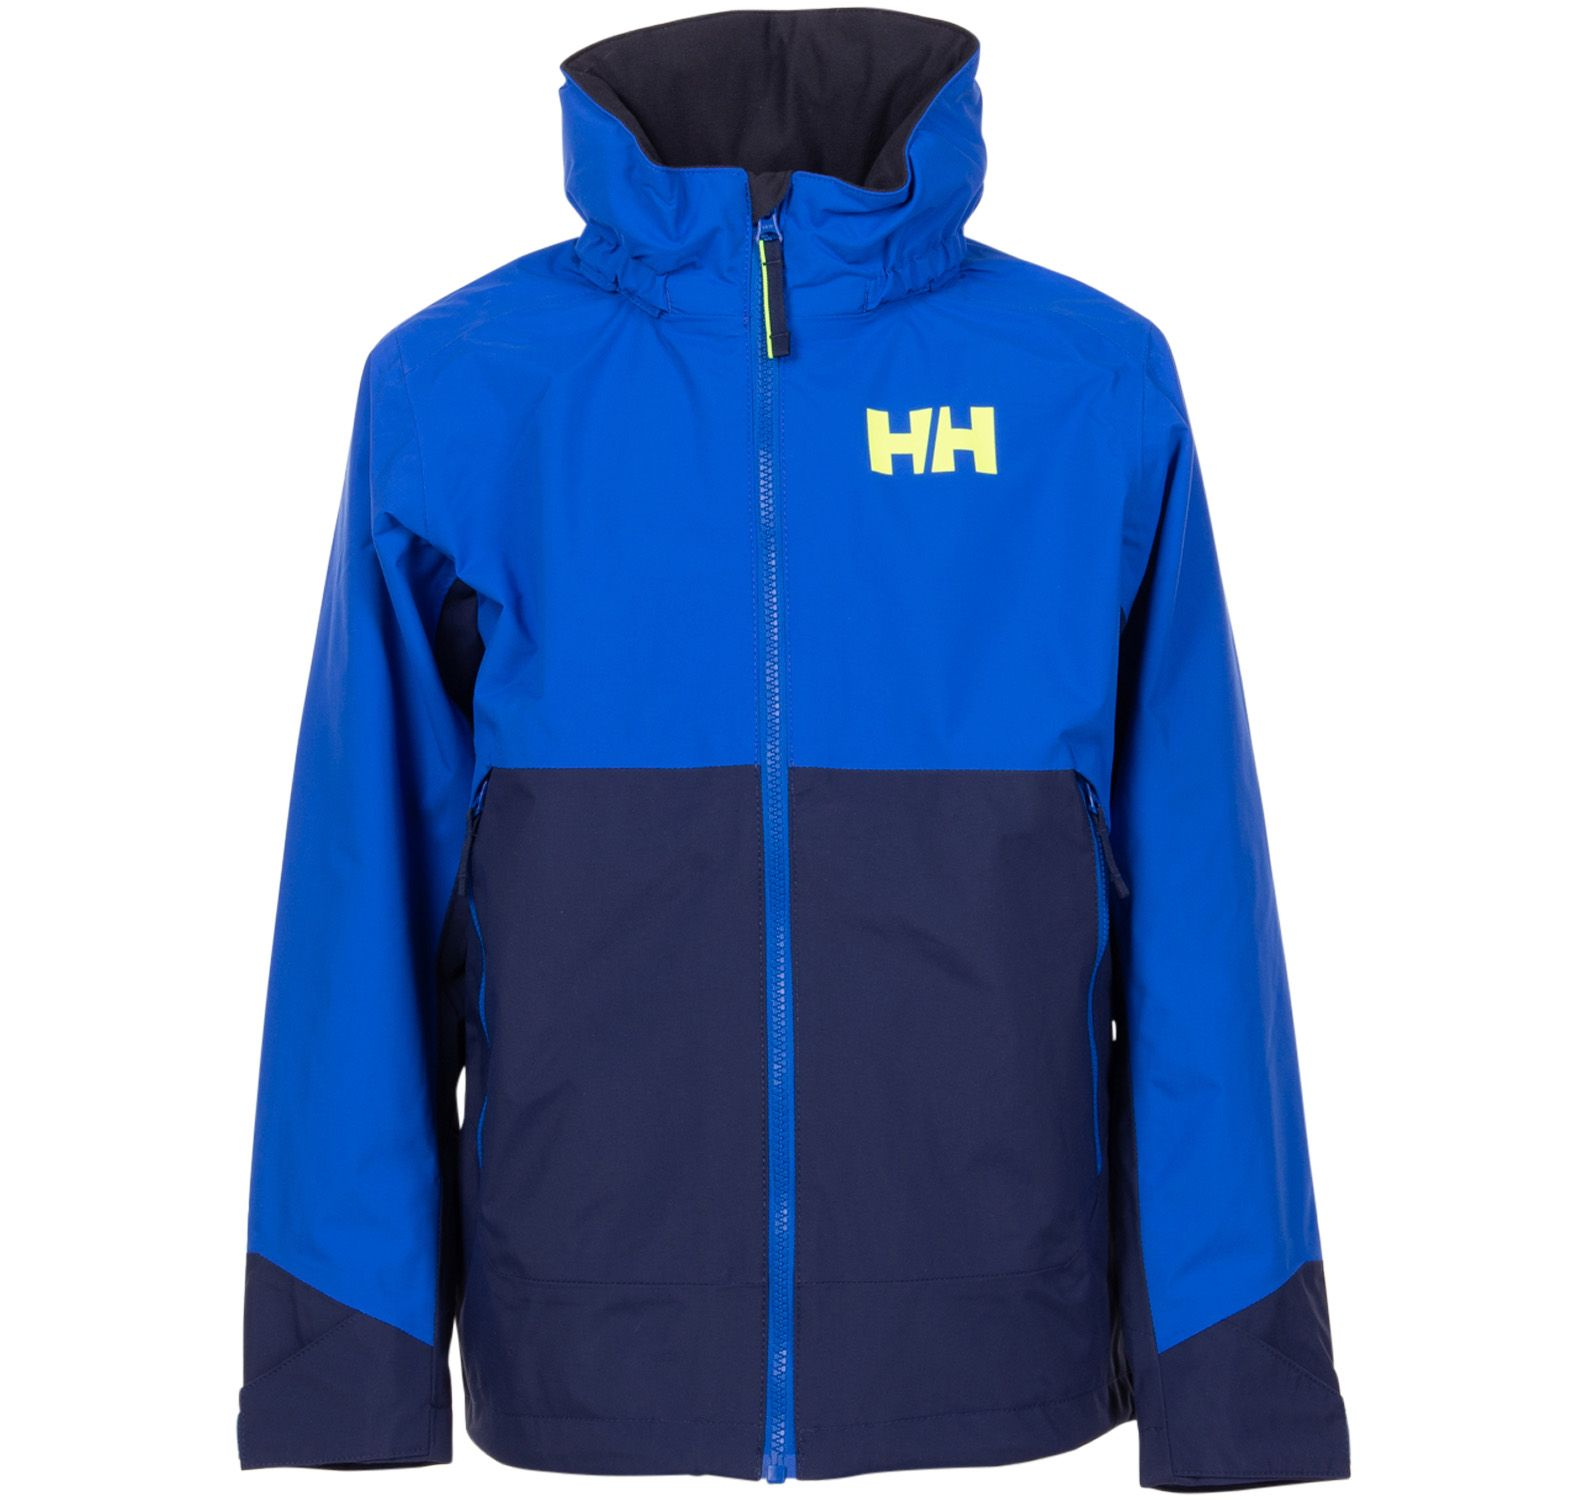 JR ASCENT JACKET, 563 OLYMPIAN BLUE, 152